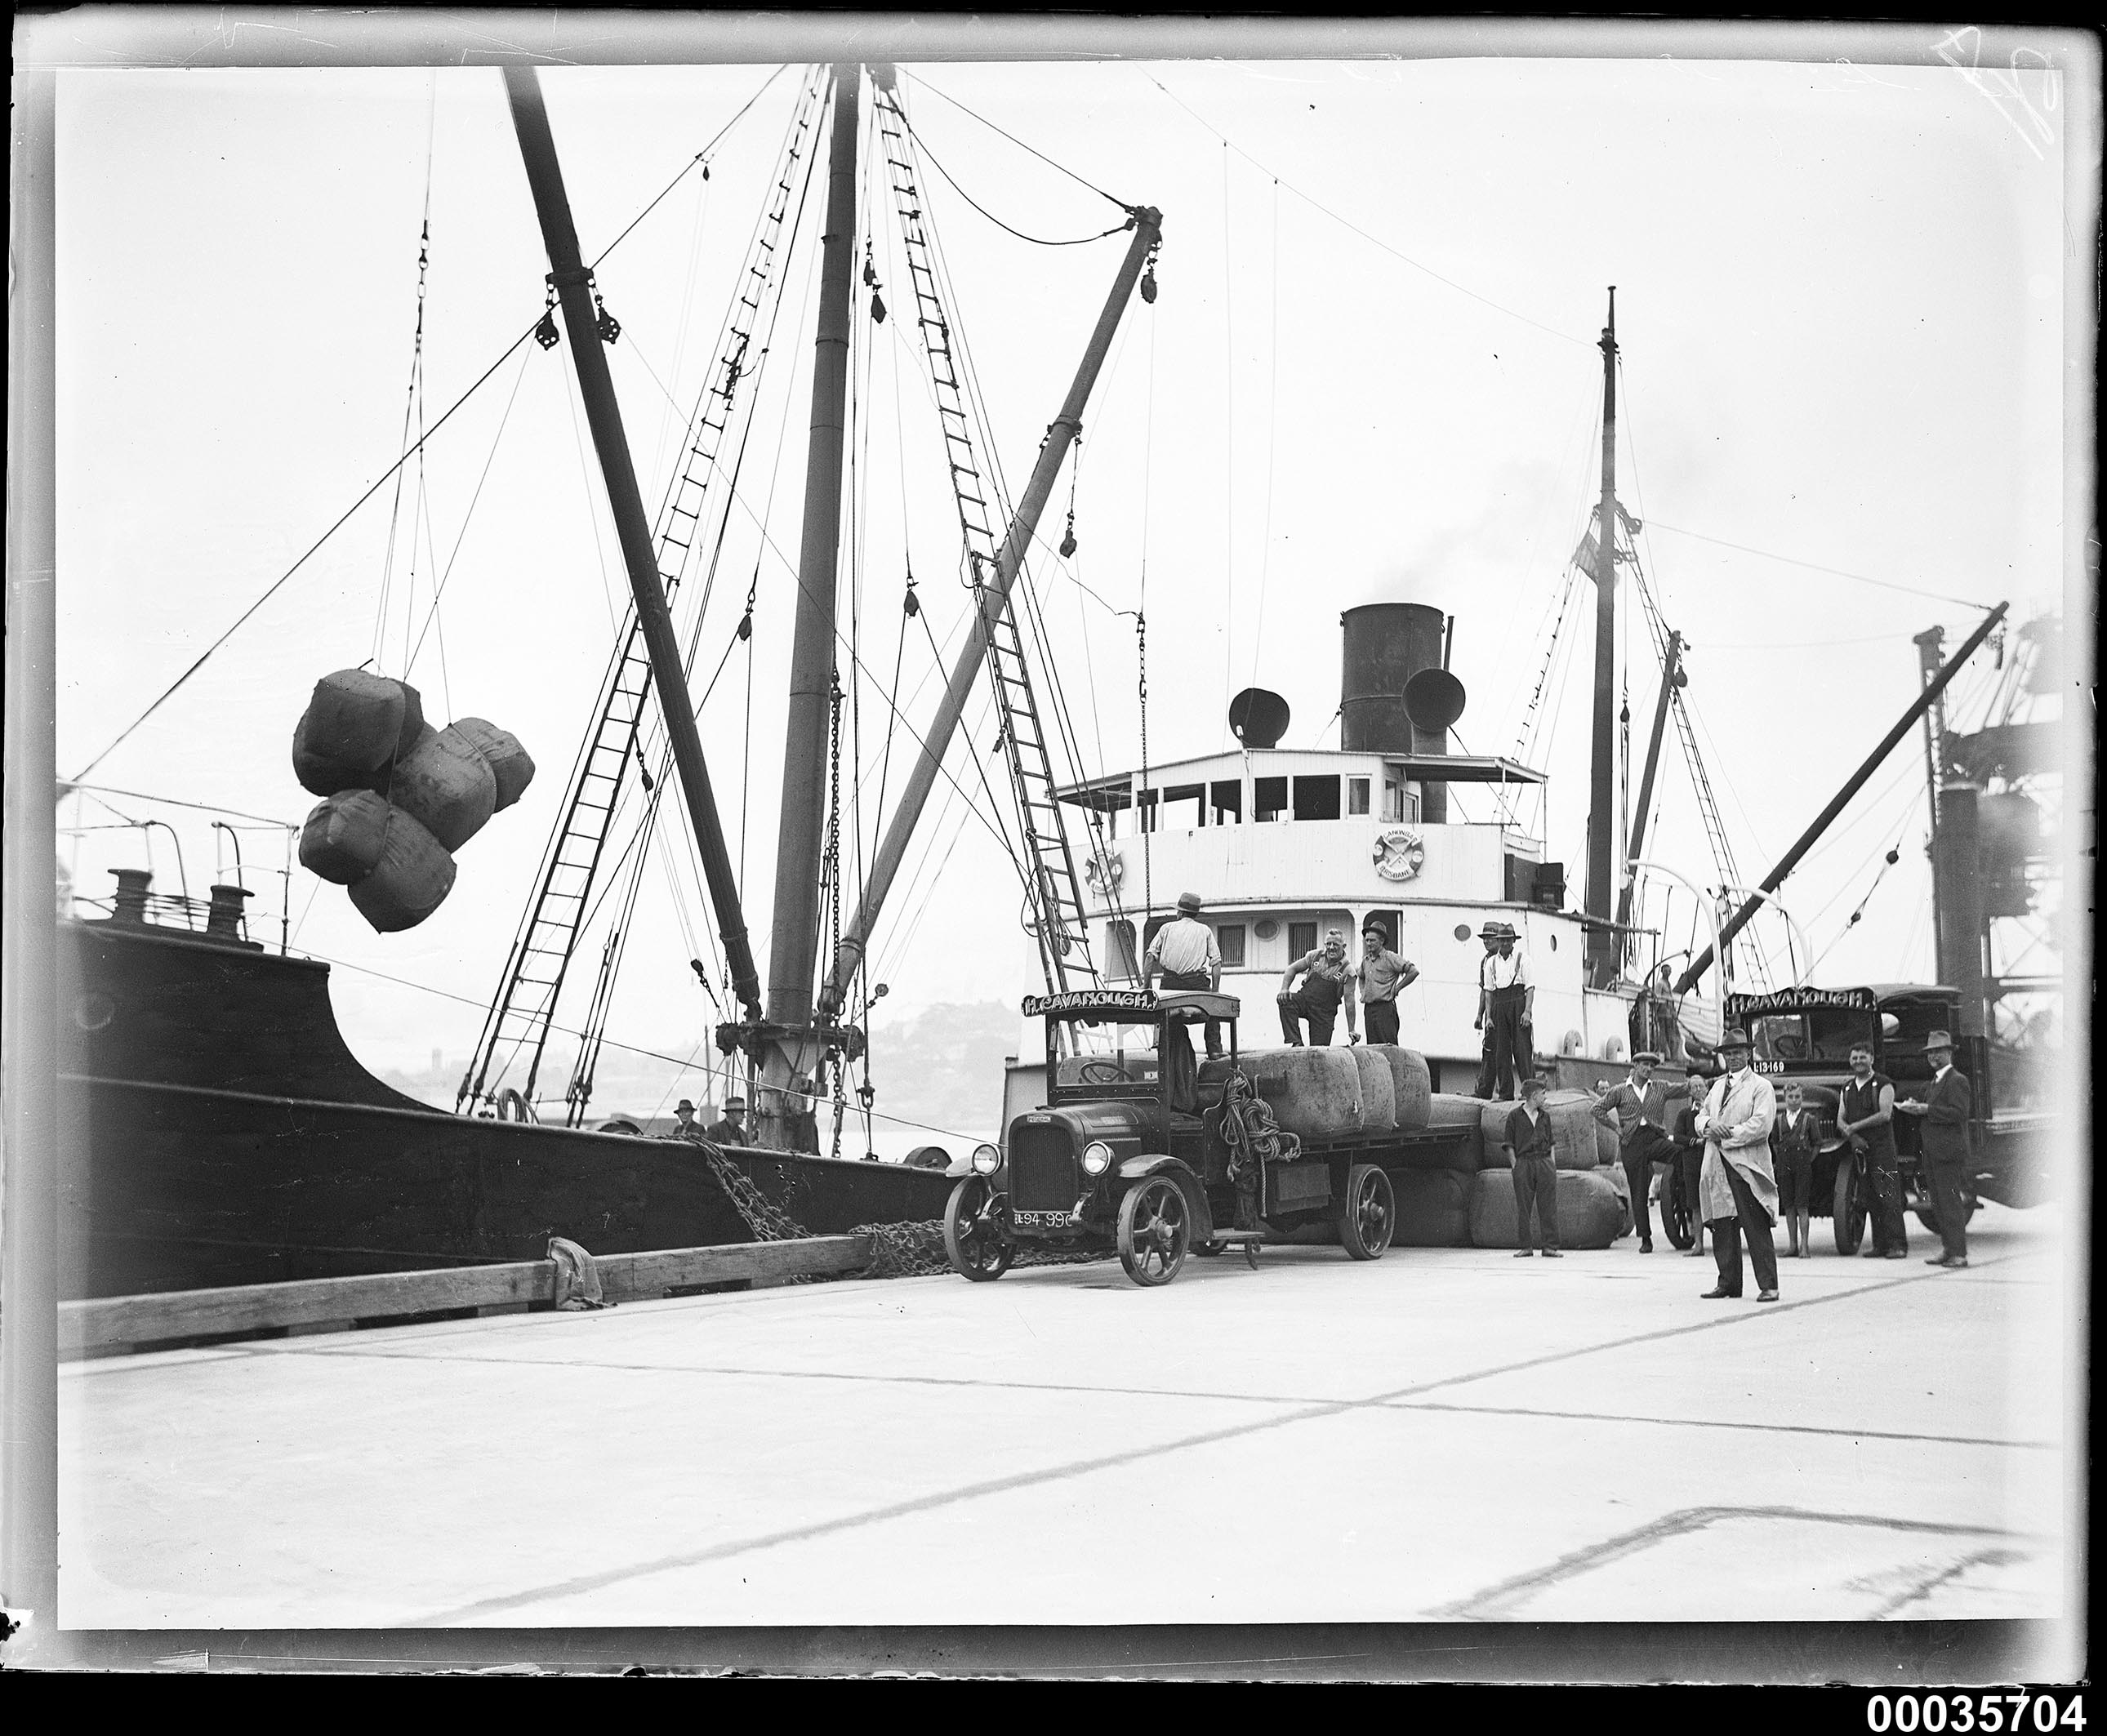 Unloading wool bales from SS CANONBAR, 1927-1940